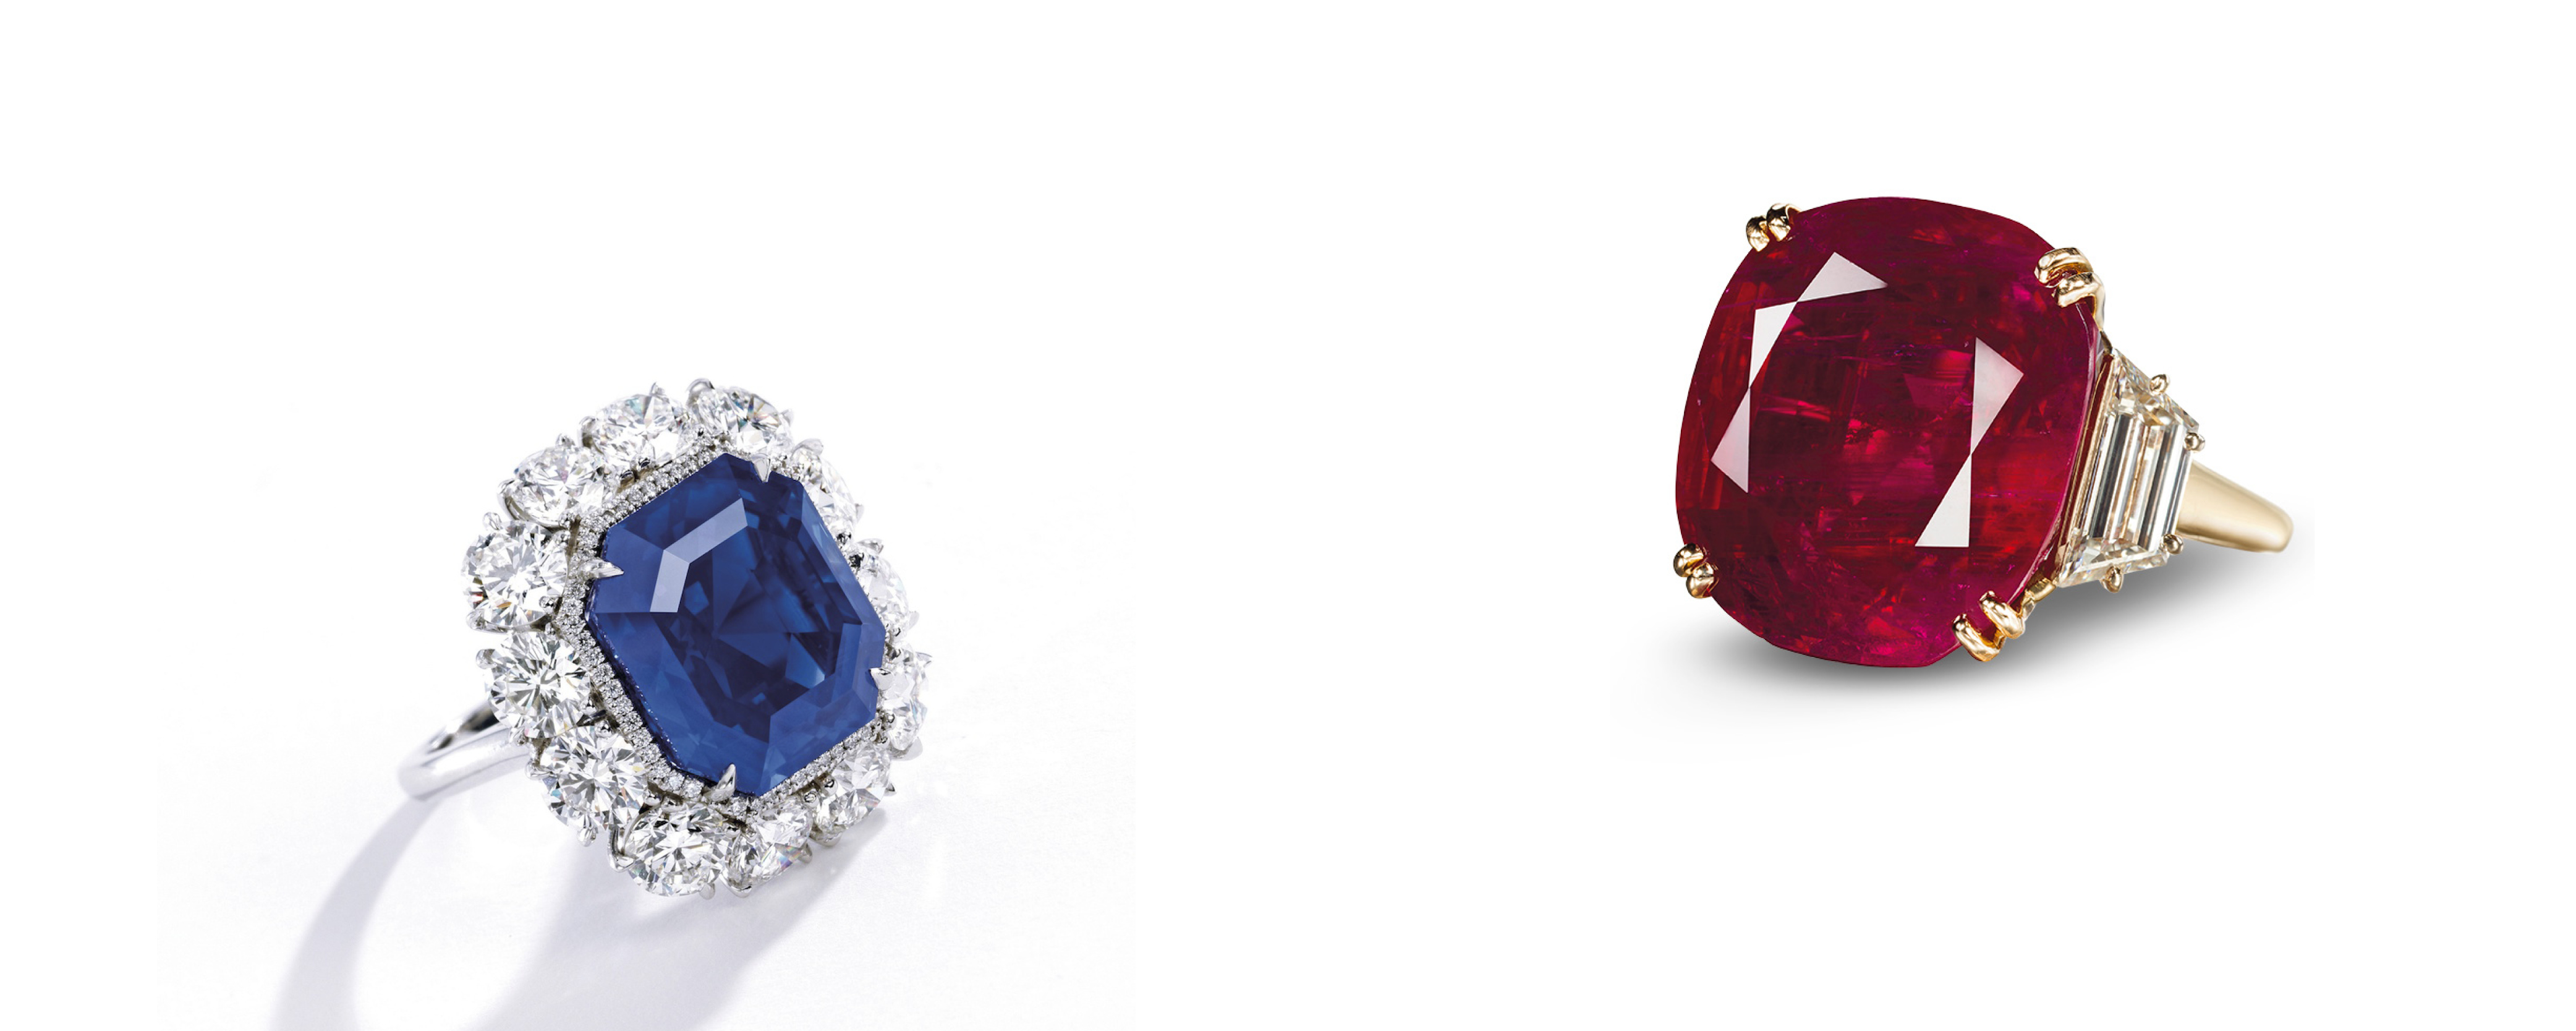 Ruby, Sapphire & Spinel Auction Records • Under the Hammer • Lotus Gemology